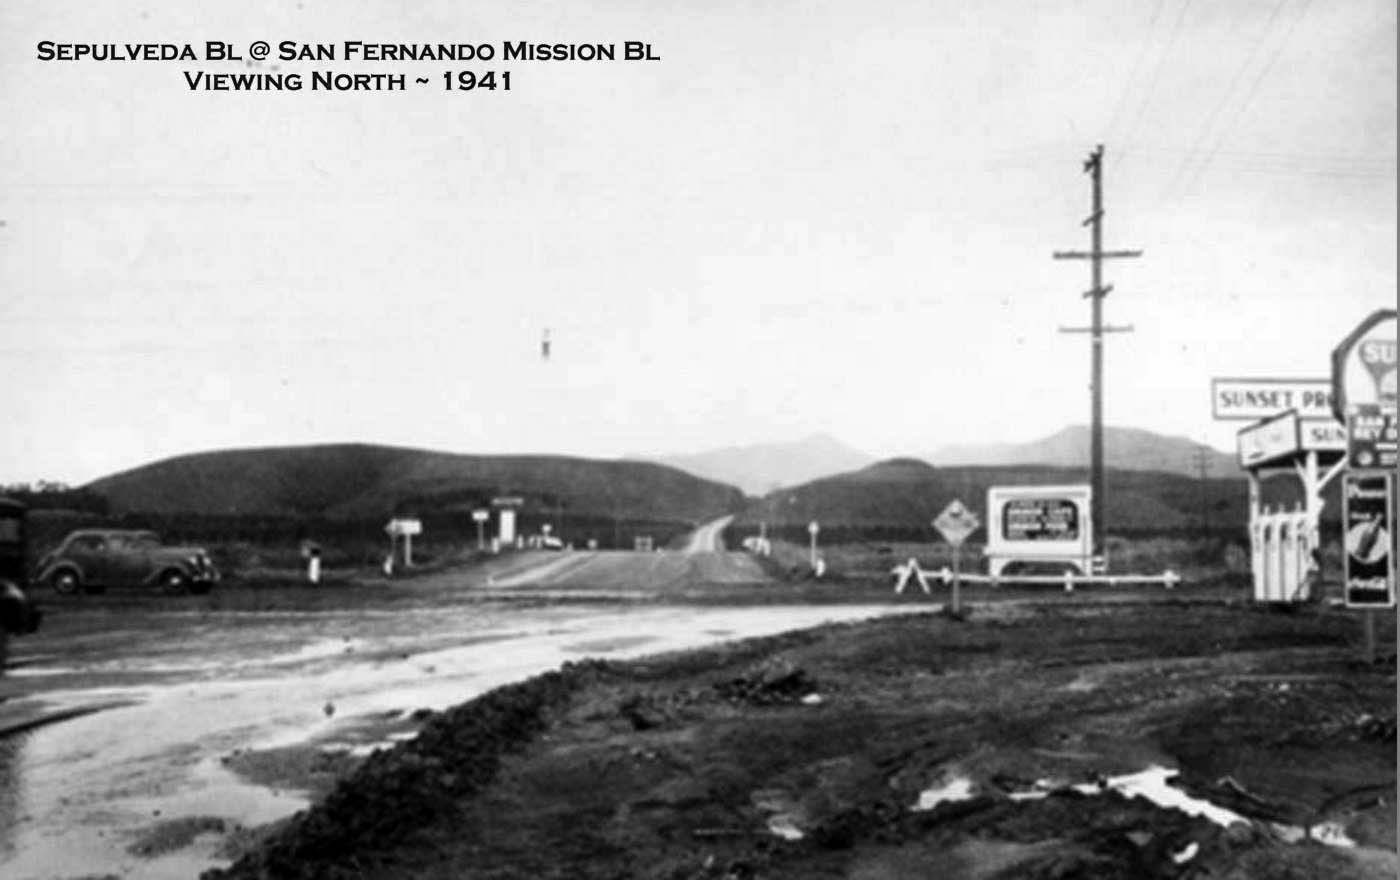 Water And Power Associates 1930 Chevrolet Wiring Diagram 1941 View Looking North On Sepulveda Boulevard At San Fernando Mission Today Hills The N E Corner There Is A Sign For